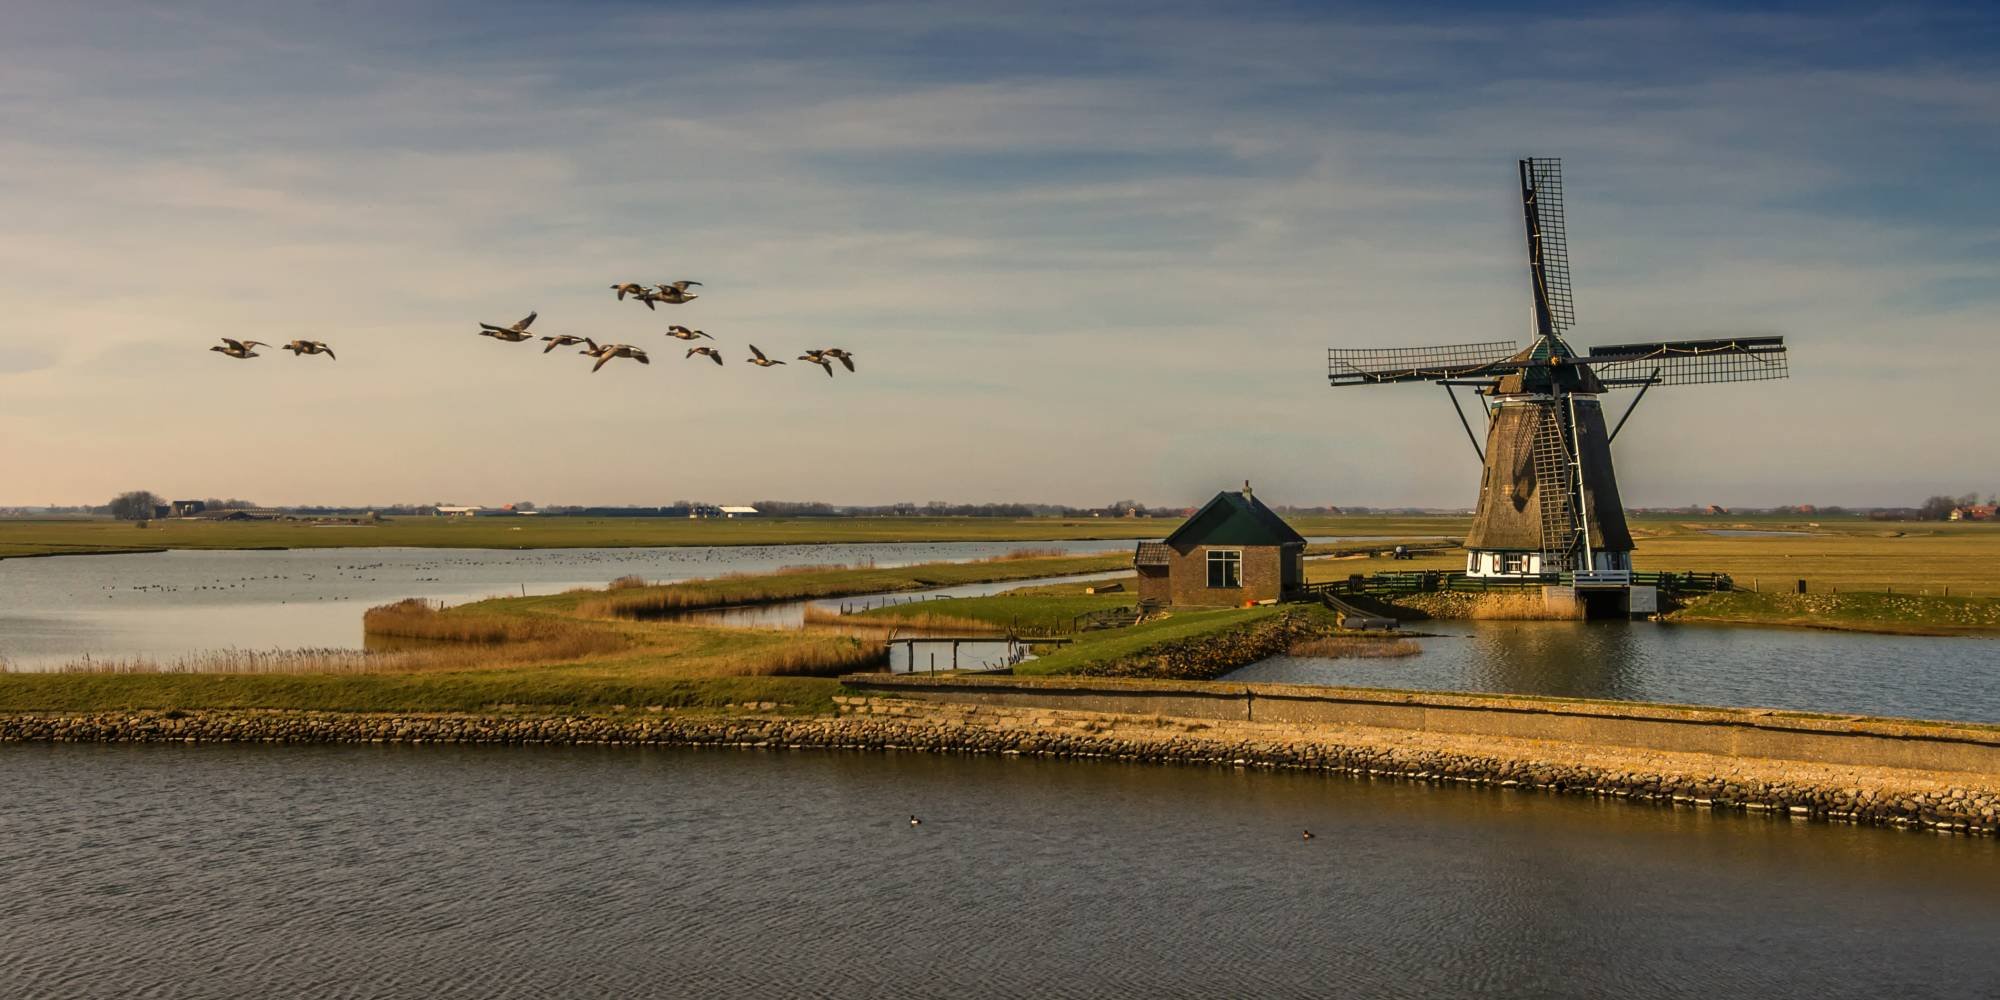 Dutch windmills, now iconic for their aesthetic purposes, once served as economic benefits and practicality of wind power.